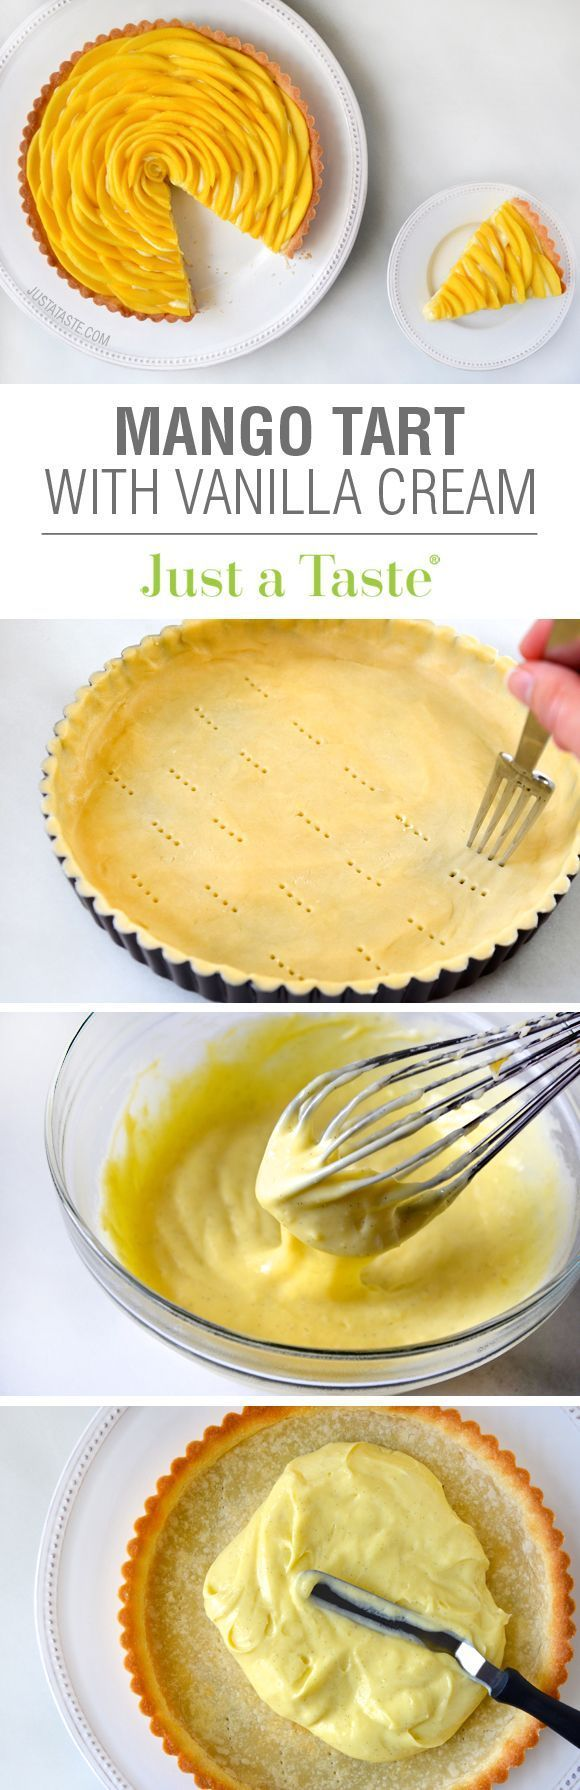 pozri Mango Tart with Vanilla Bean Pastry Cream #recipe on justataste.com